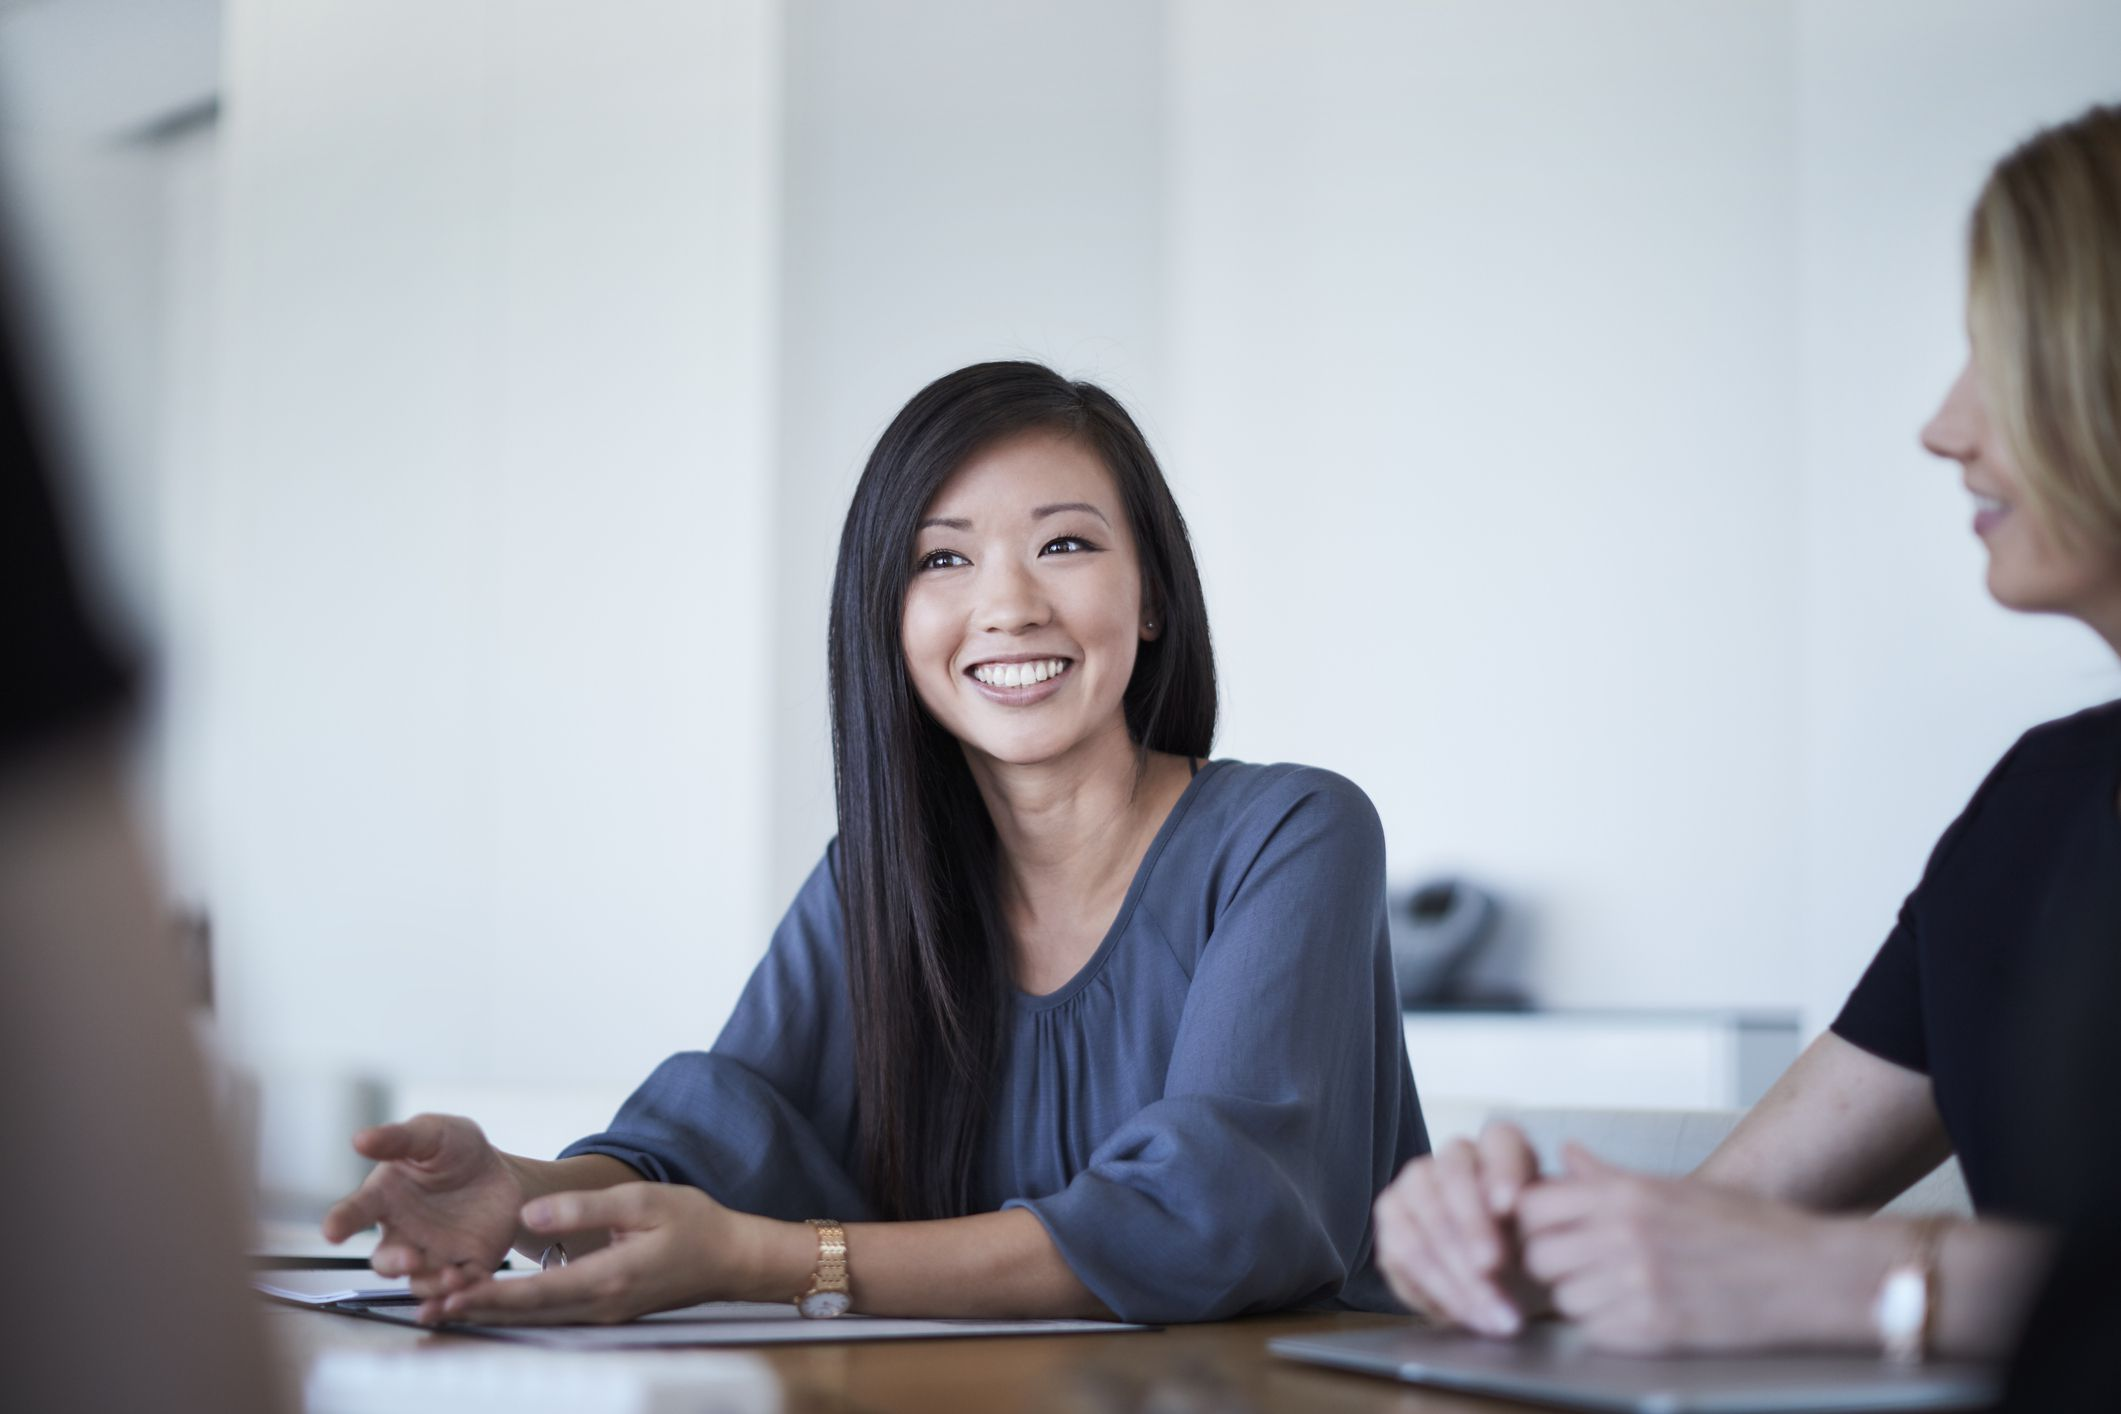 How You Can Break Into a Career in Human Resources